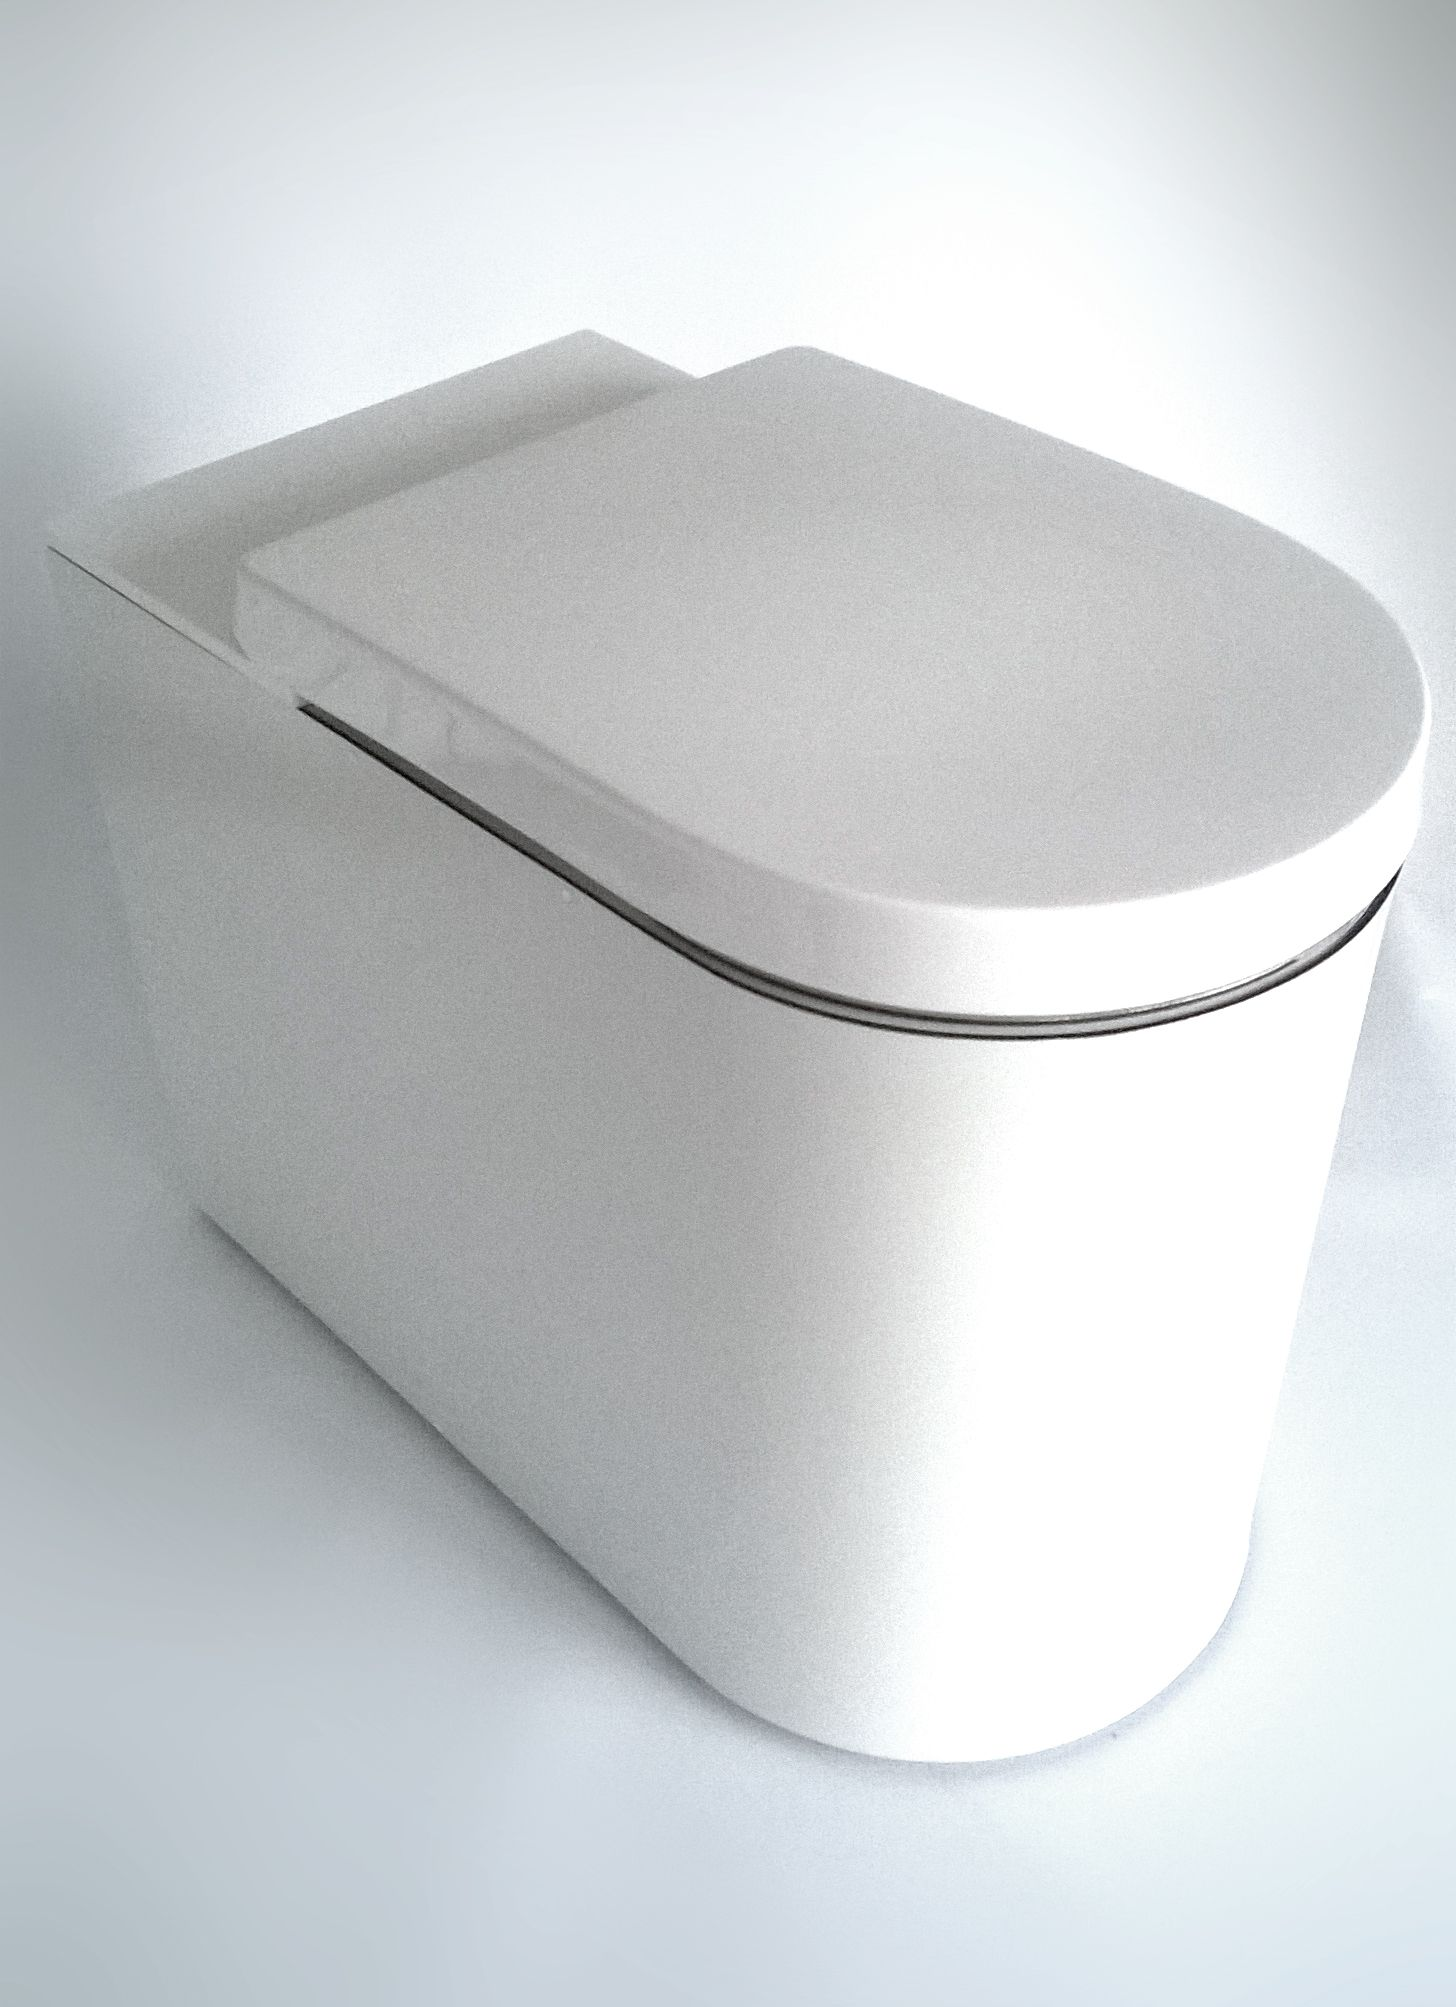 Composting toilet. simploo waterless composting toilet    oupodome eck    Pinterest